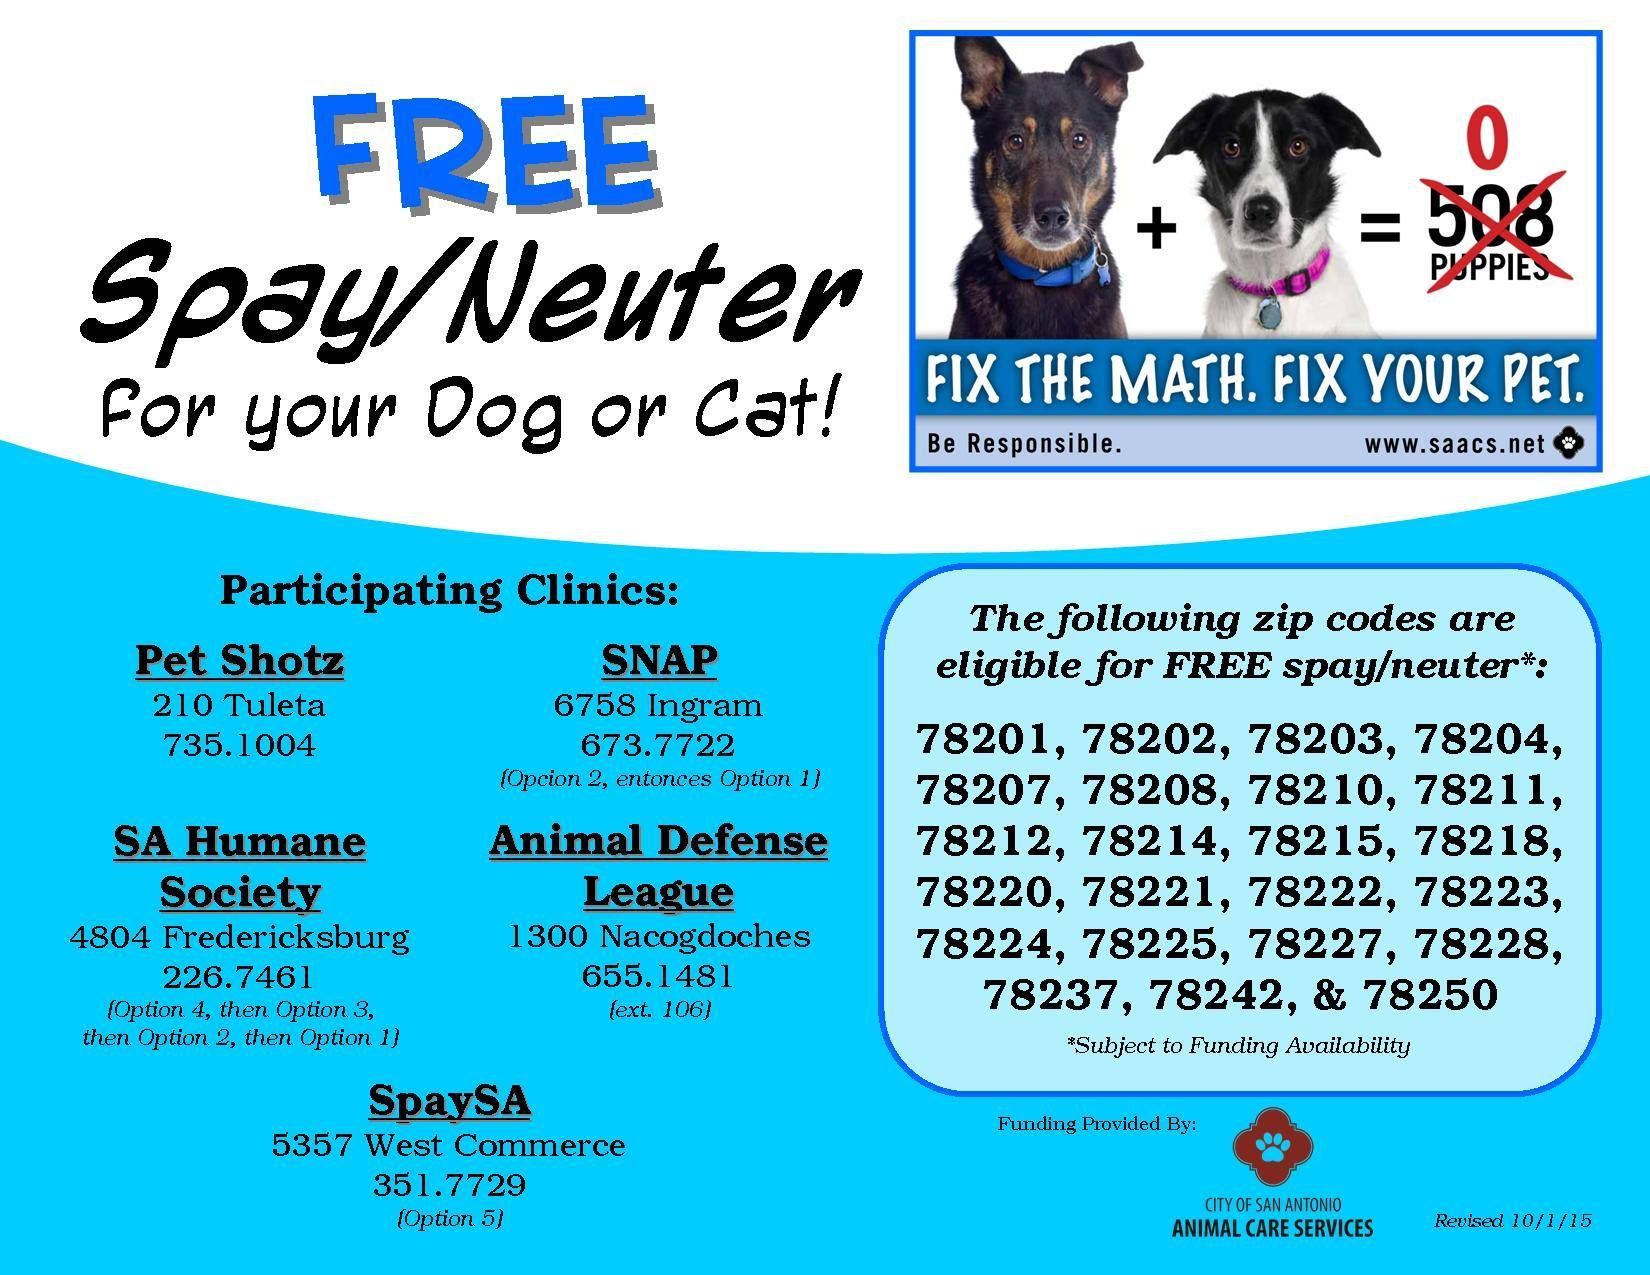 FREE spay/neuter services for cats and dogs living in the